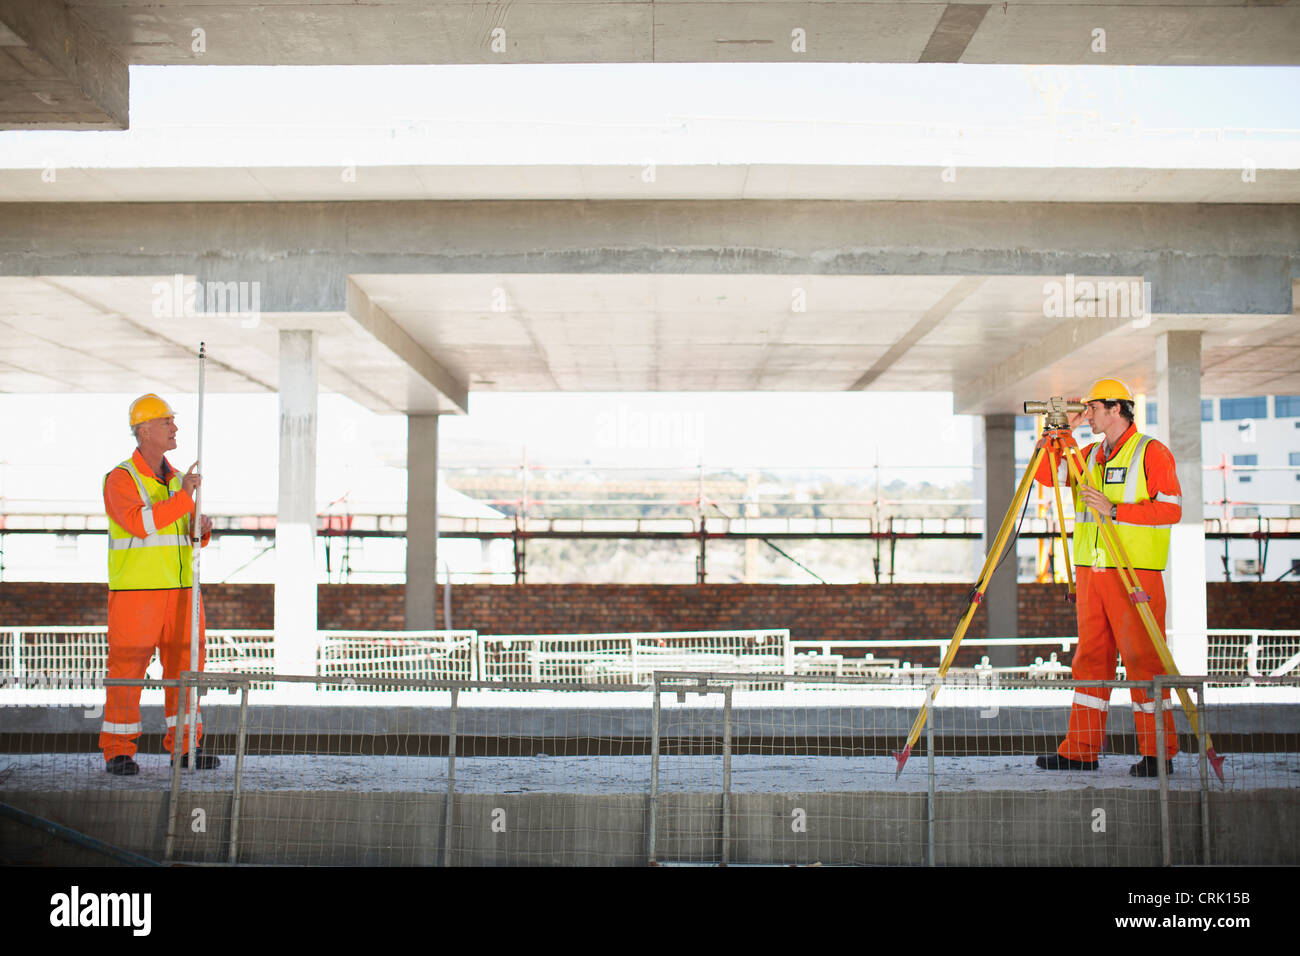 Workers using equipment on site - Stock Image